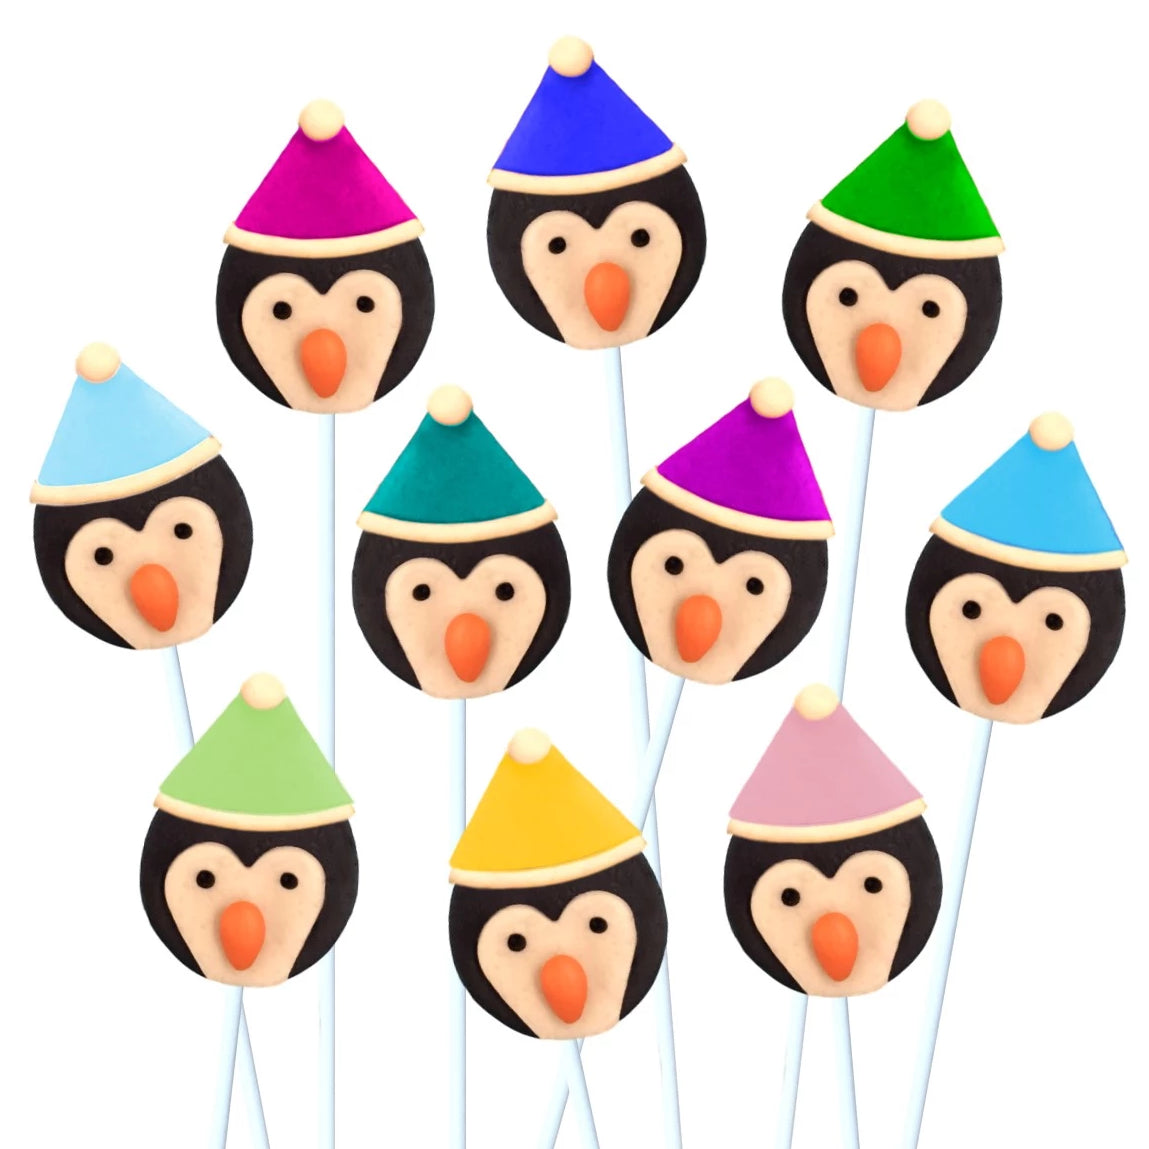 colorful penguins with hats marzipan candy lollipops